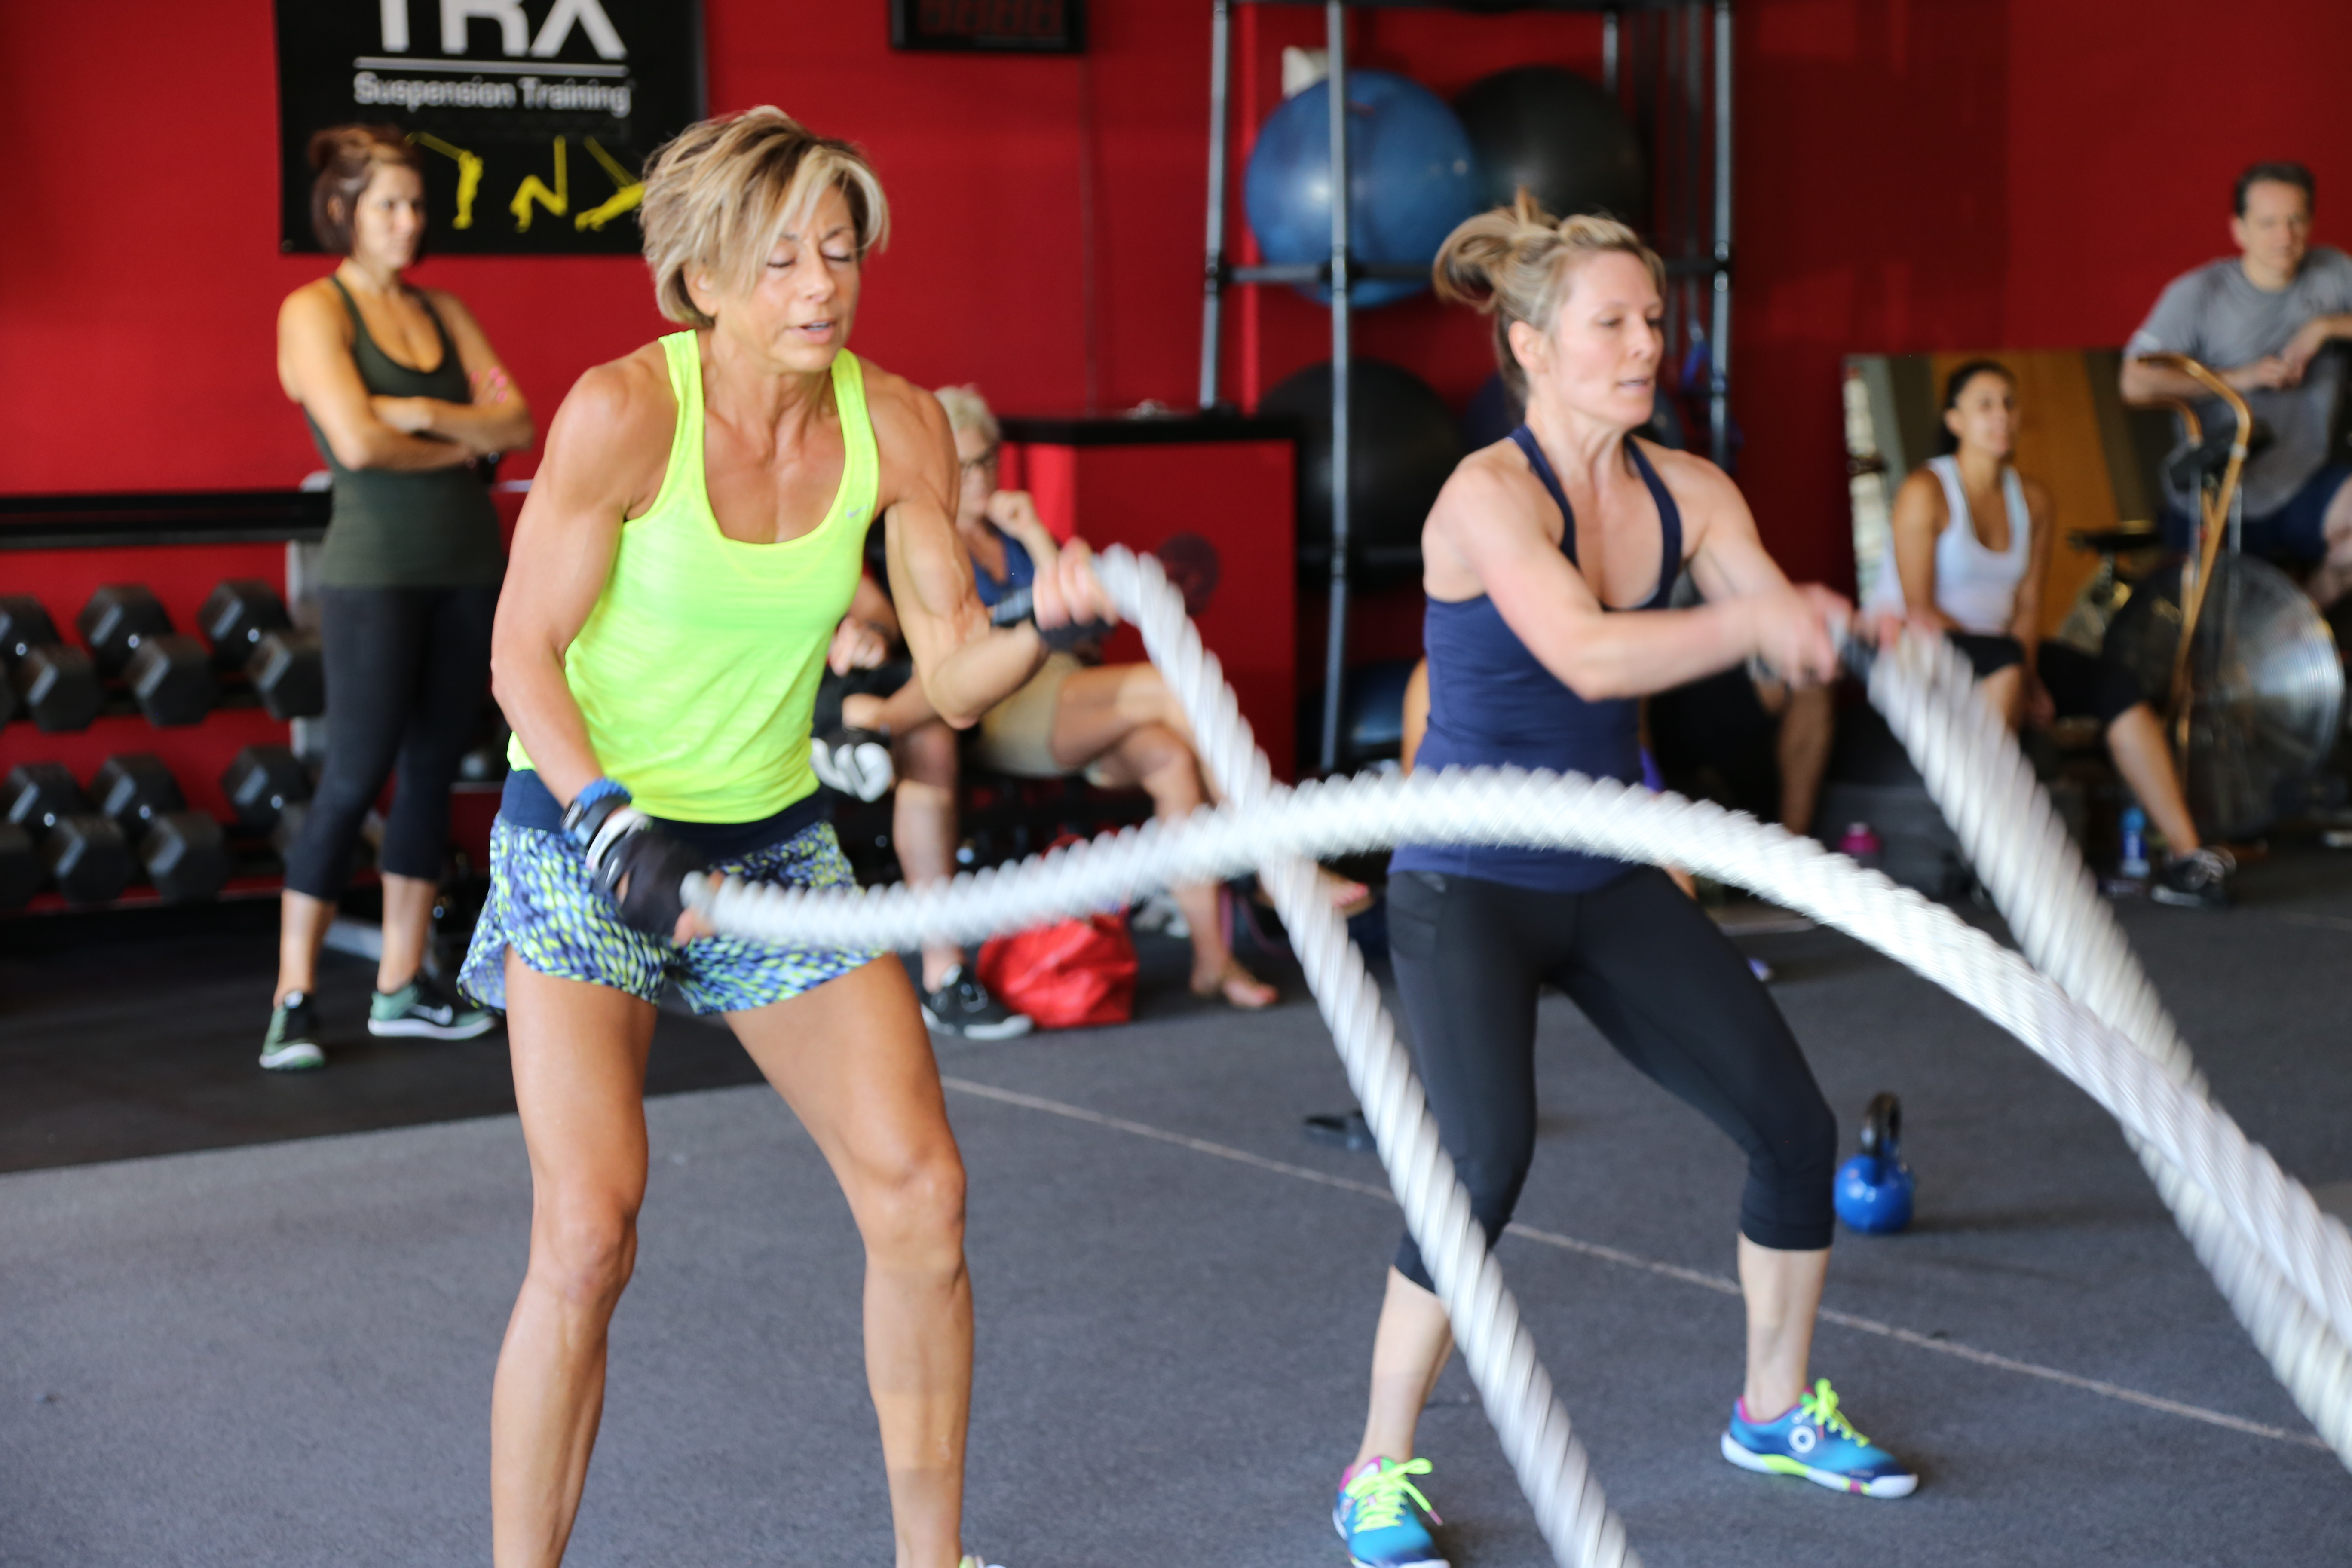 Win Six Months of FREE Workouts!